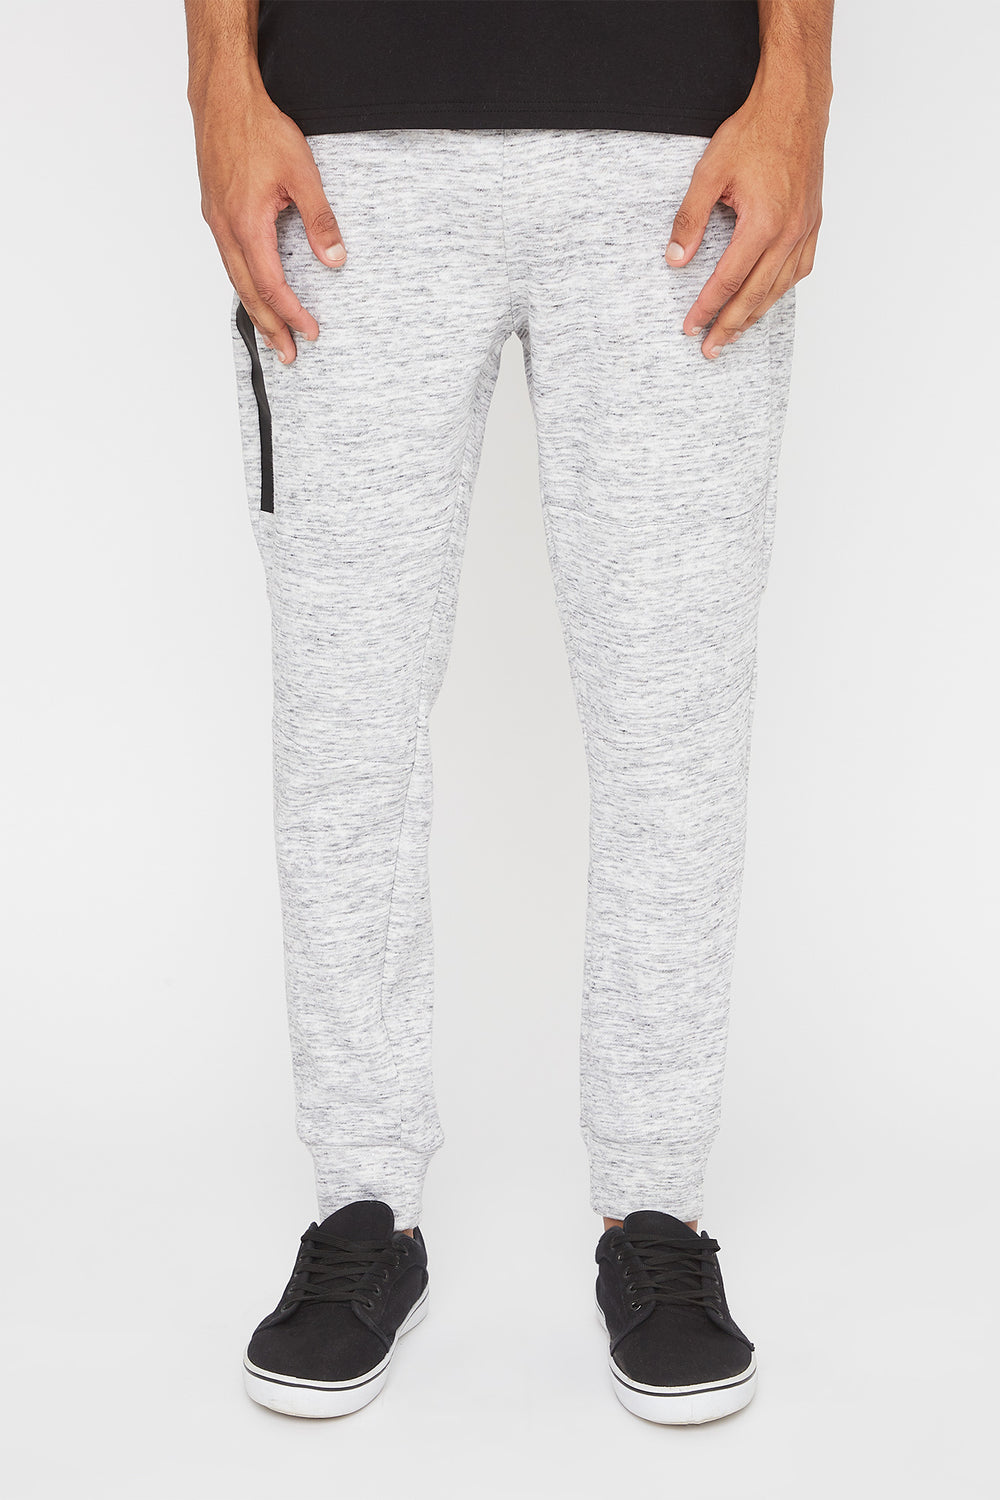 West49 Mens Zip Jogger Heather Grey